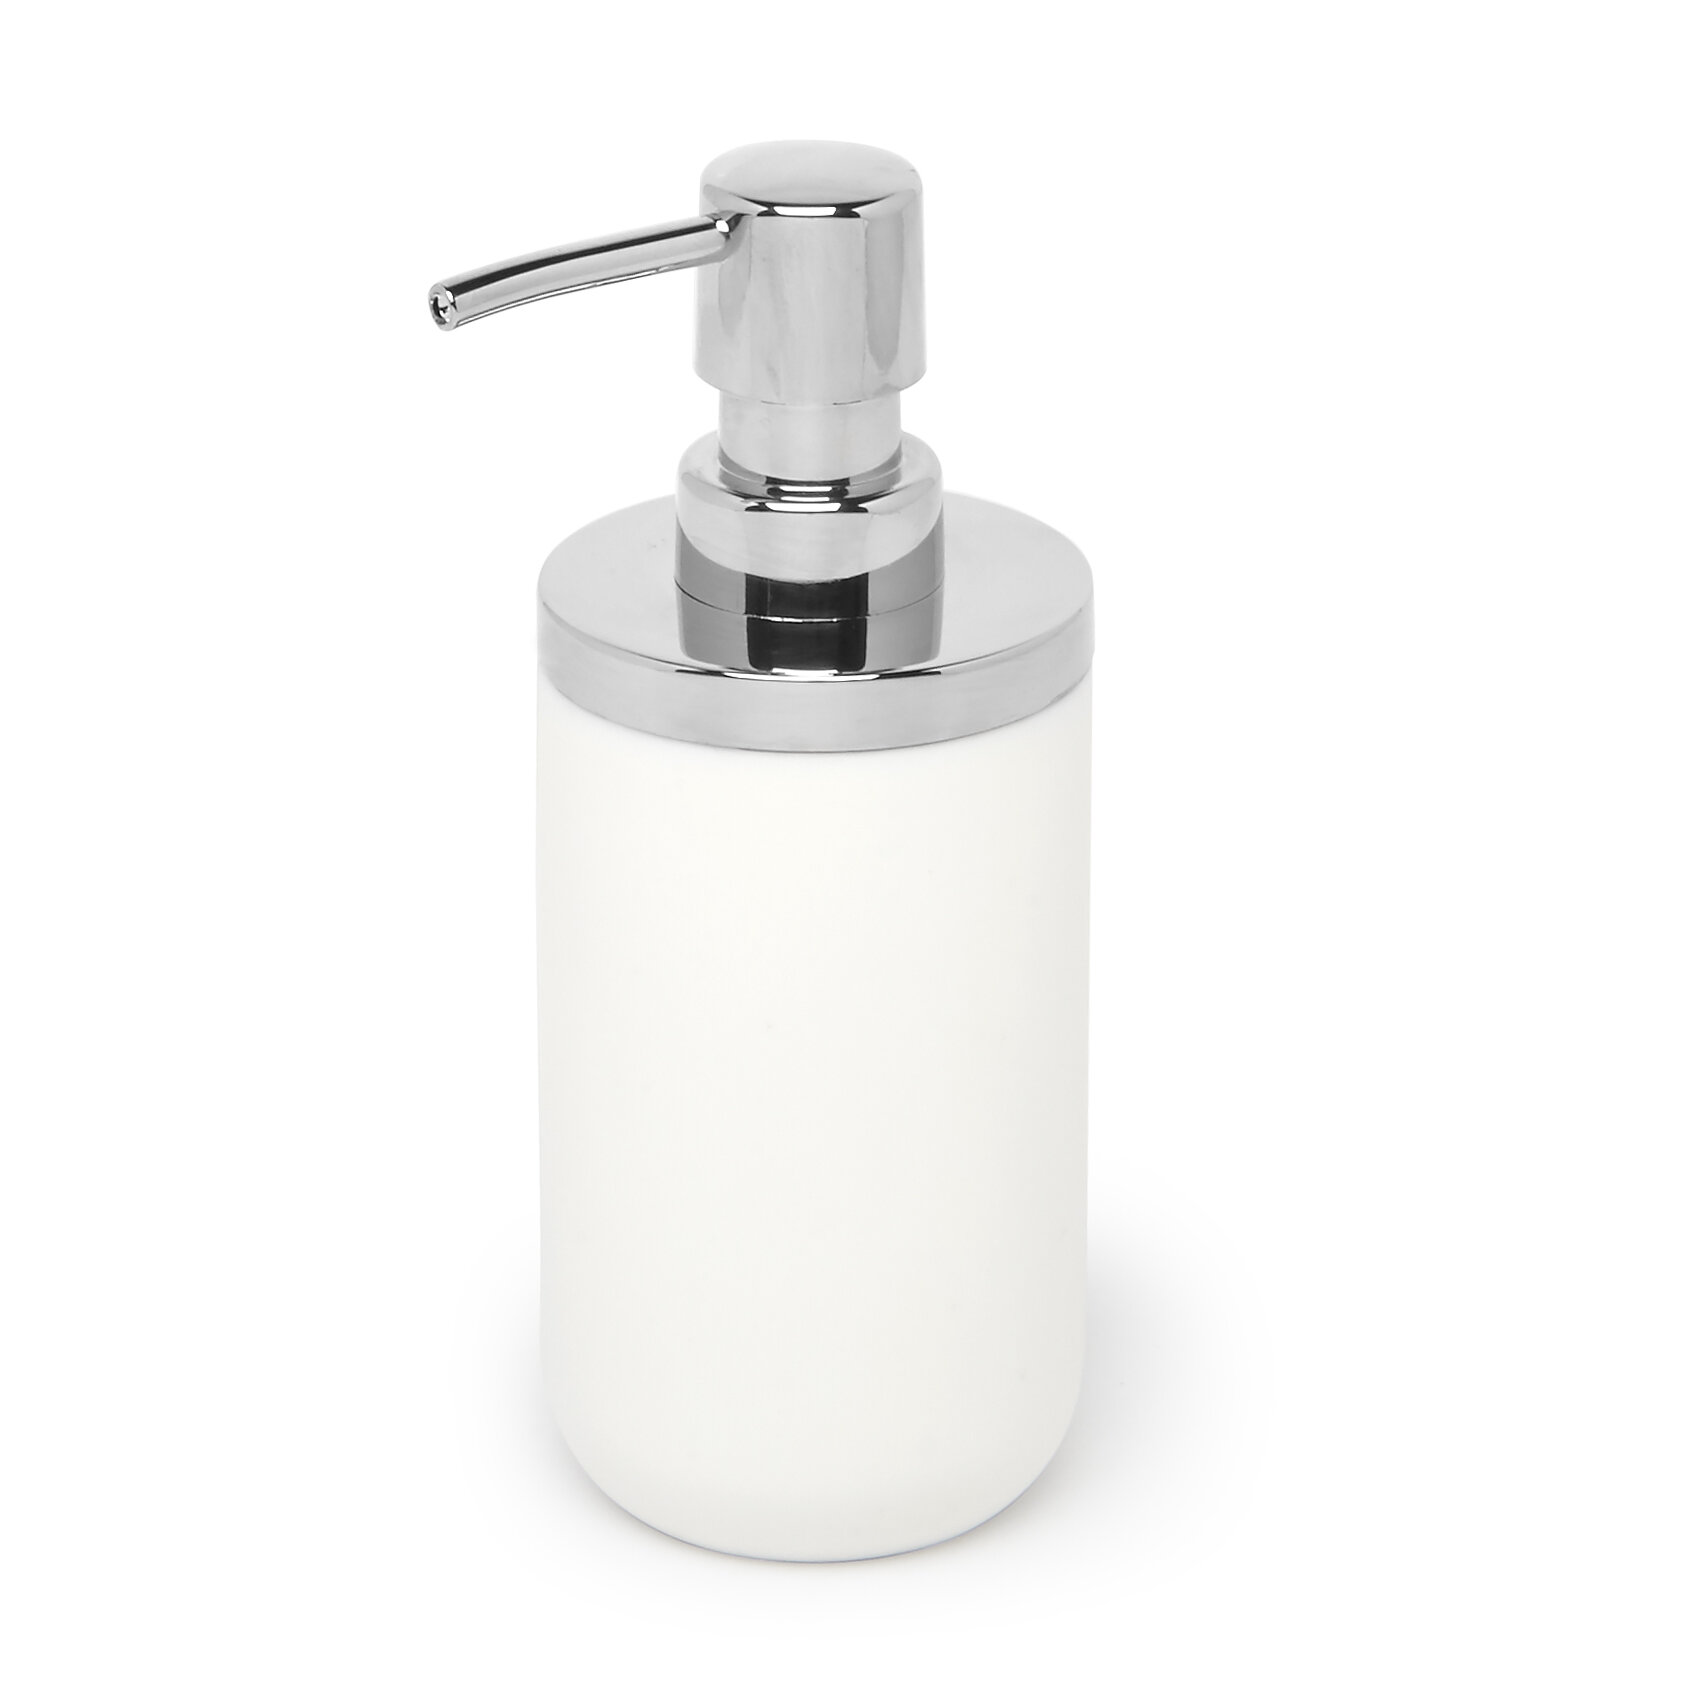 Junip Soap Dispenser